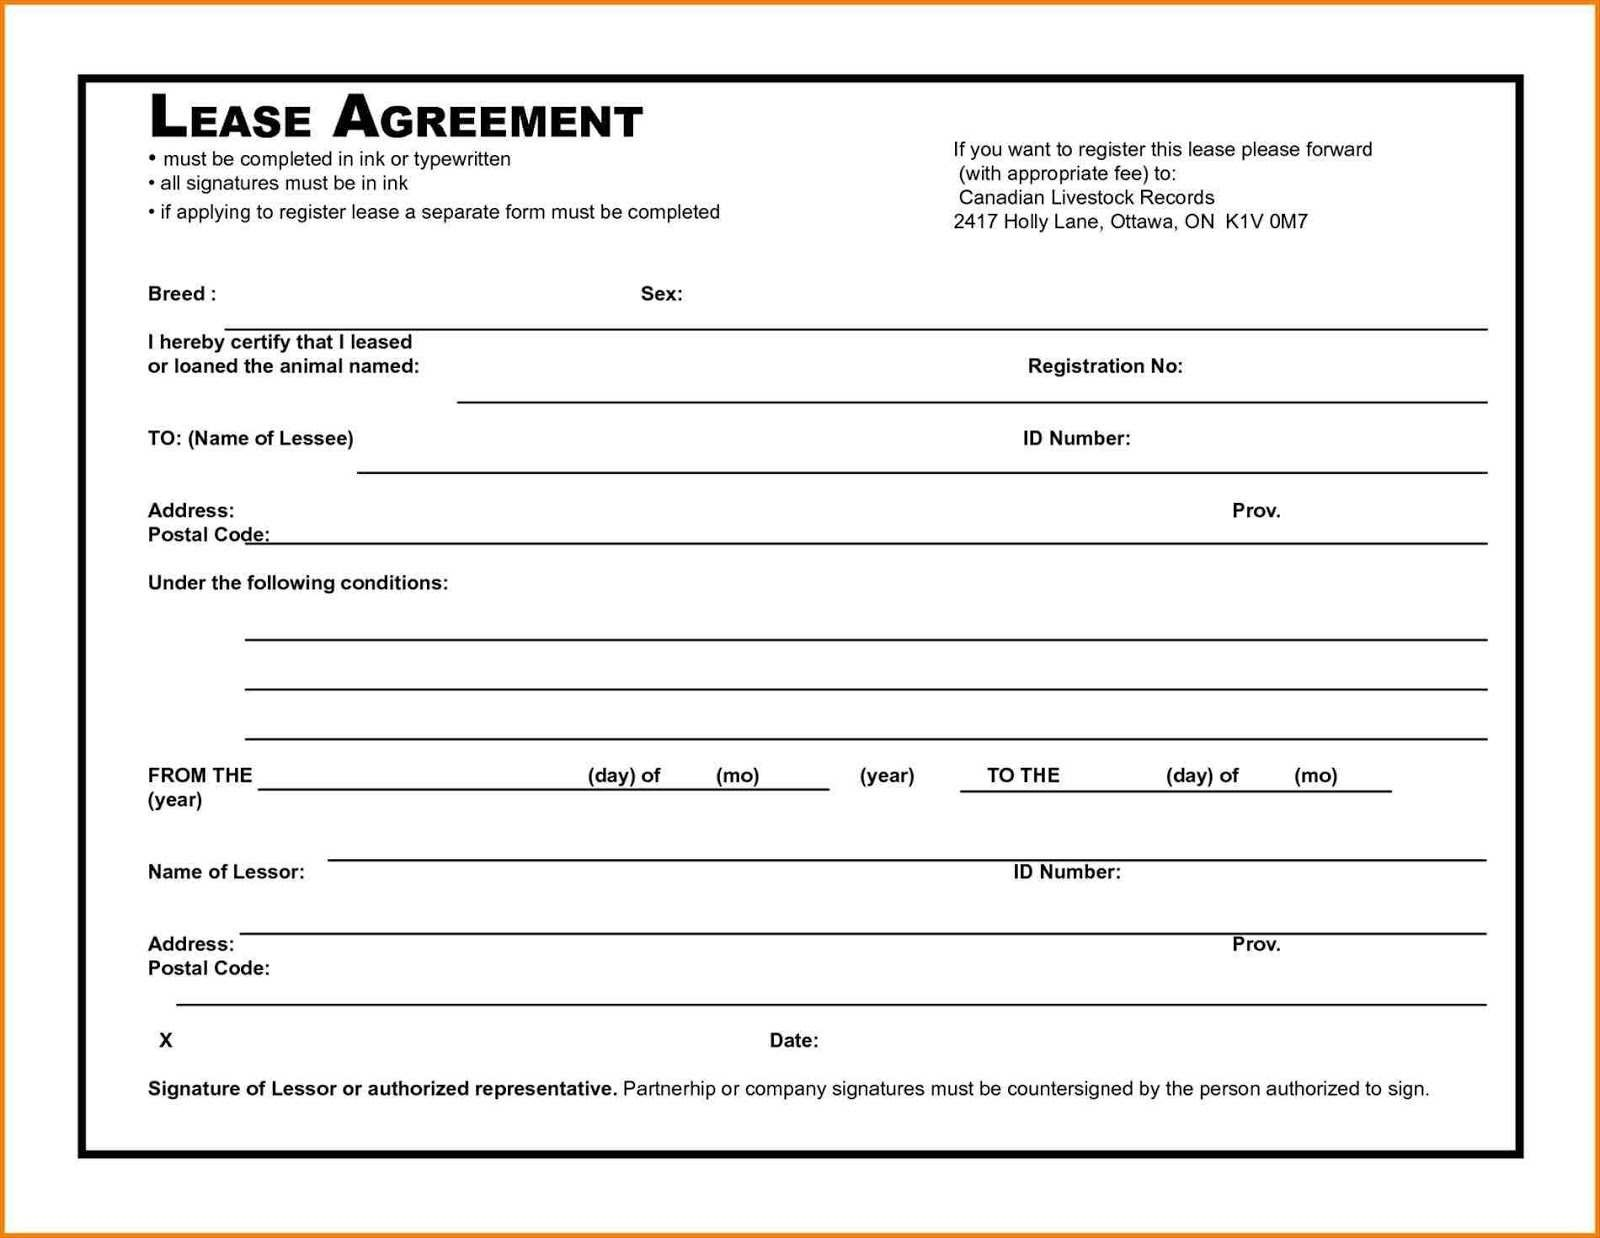 Very Basic Rental Agreement 5202 Free Printable Basic Rental - Free Printable Basic Rental Agreement